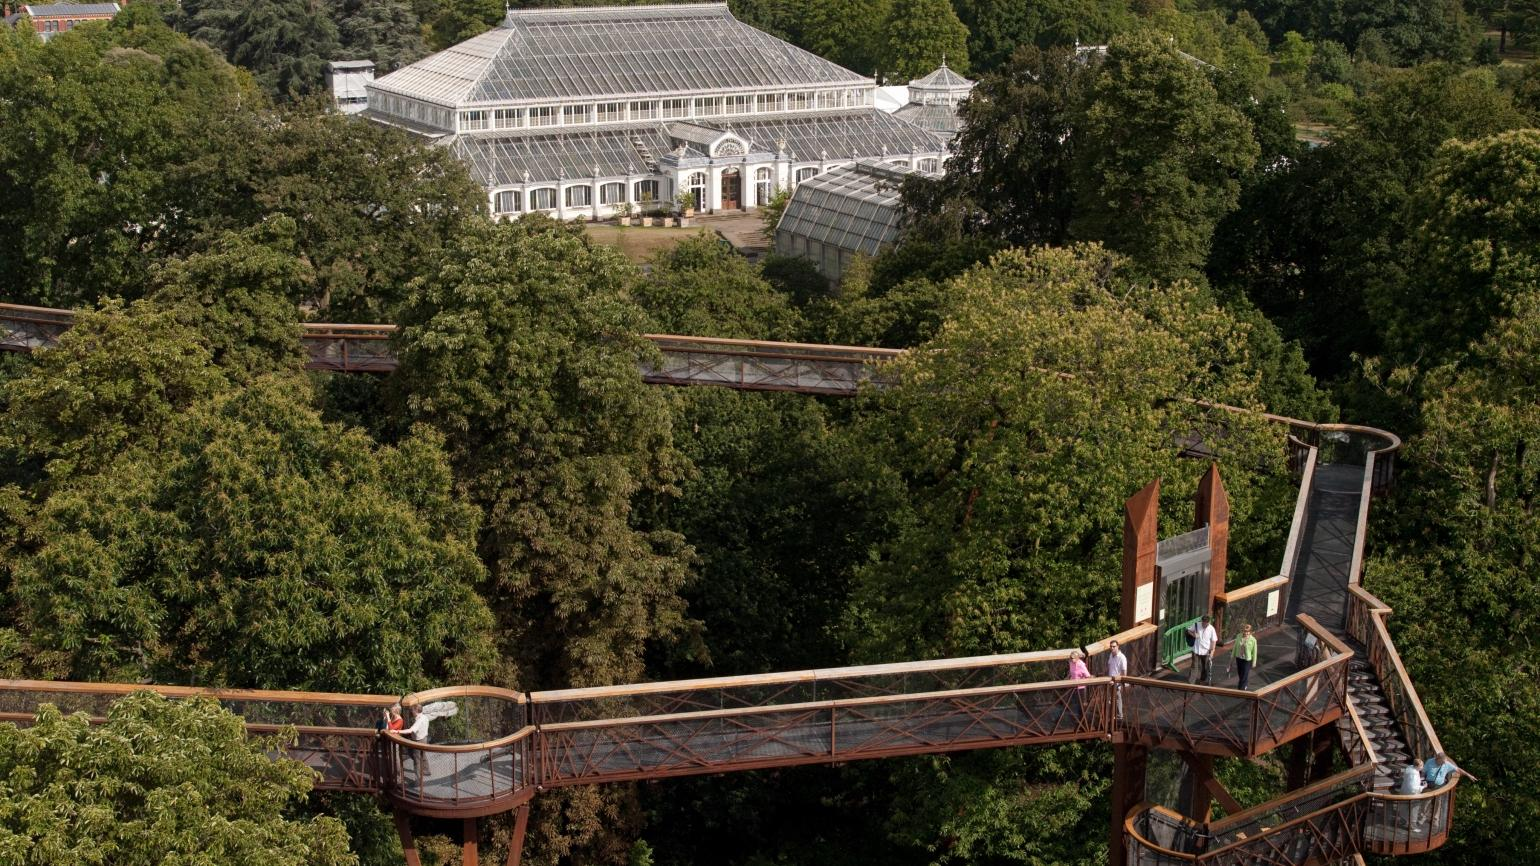 An aerial view of the Temperate House and the Treetop Walkway